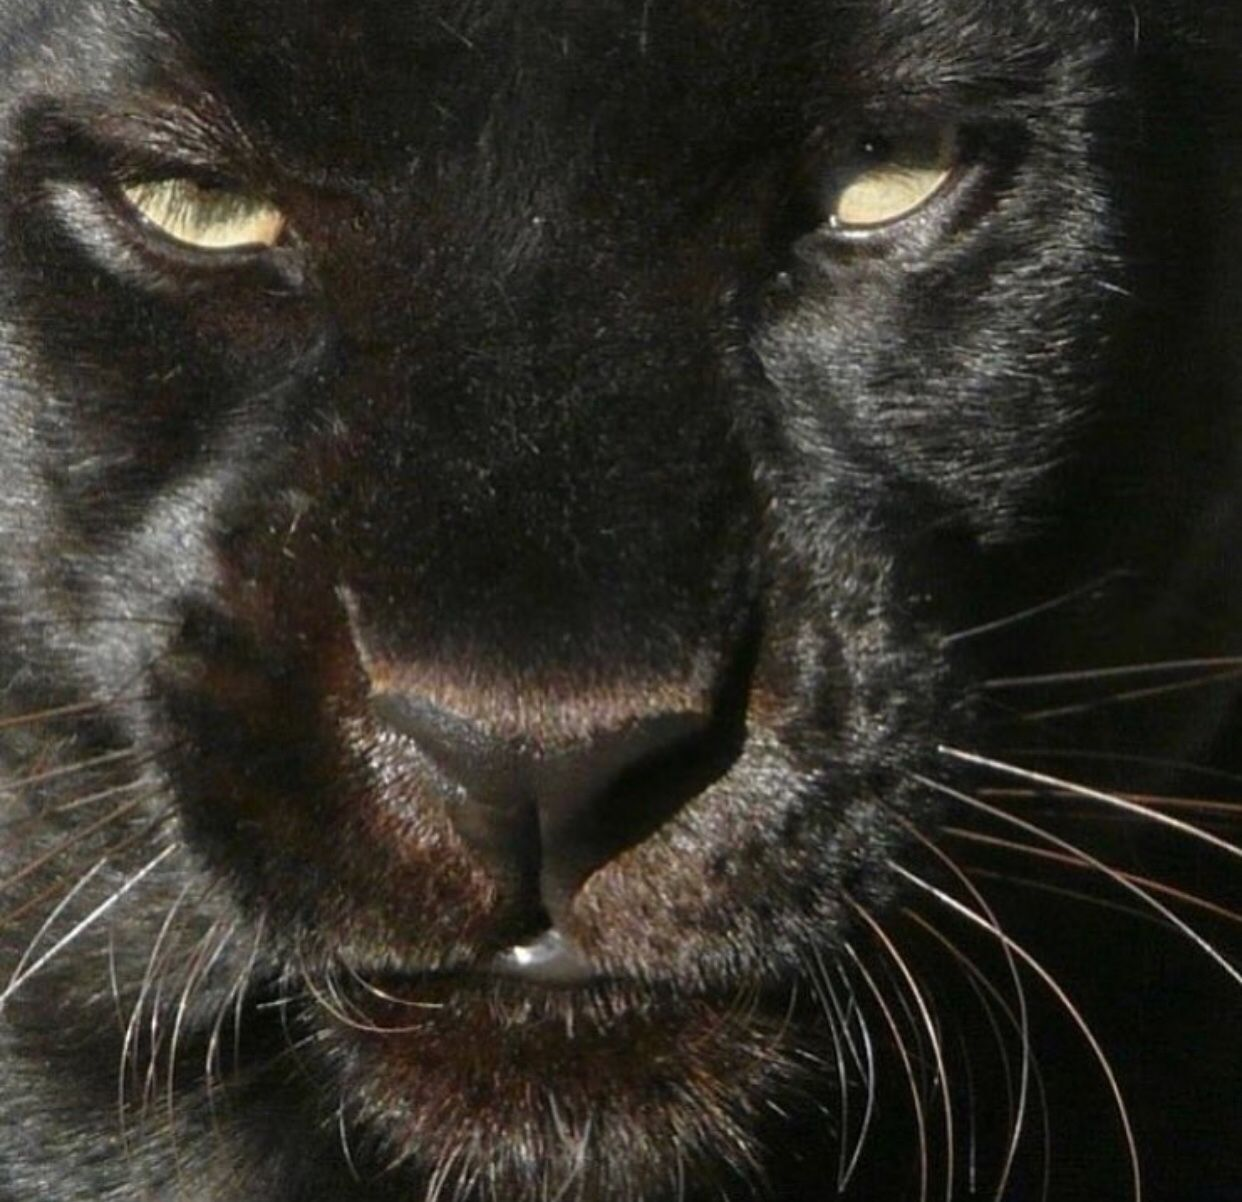 Pin by Hercorpse ️ on Aesthetic Animals, Panther, Black